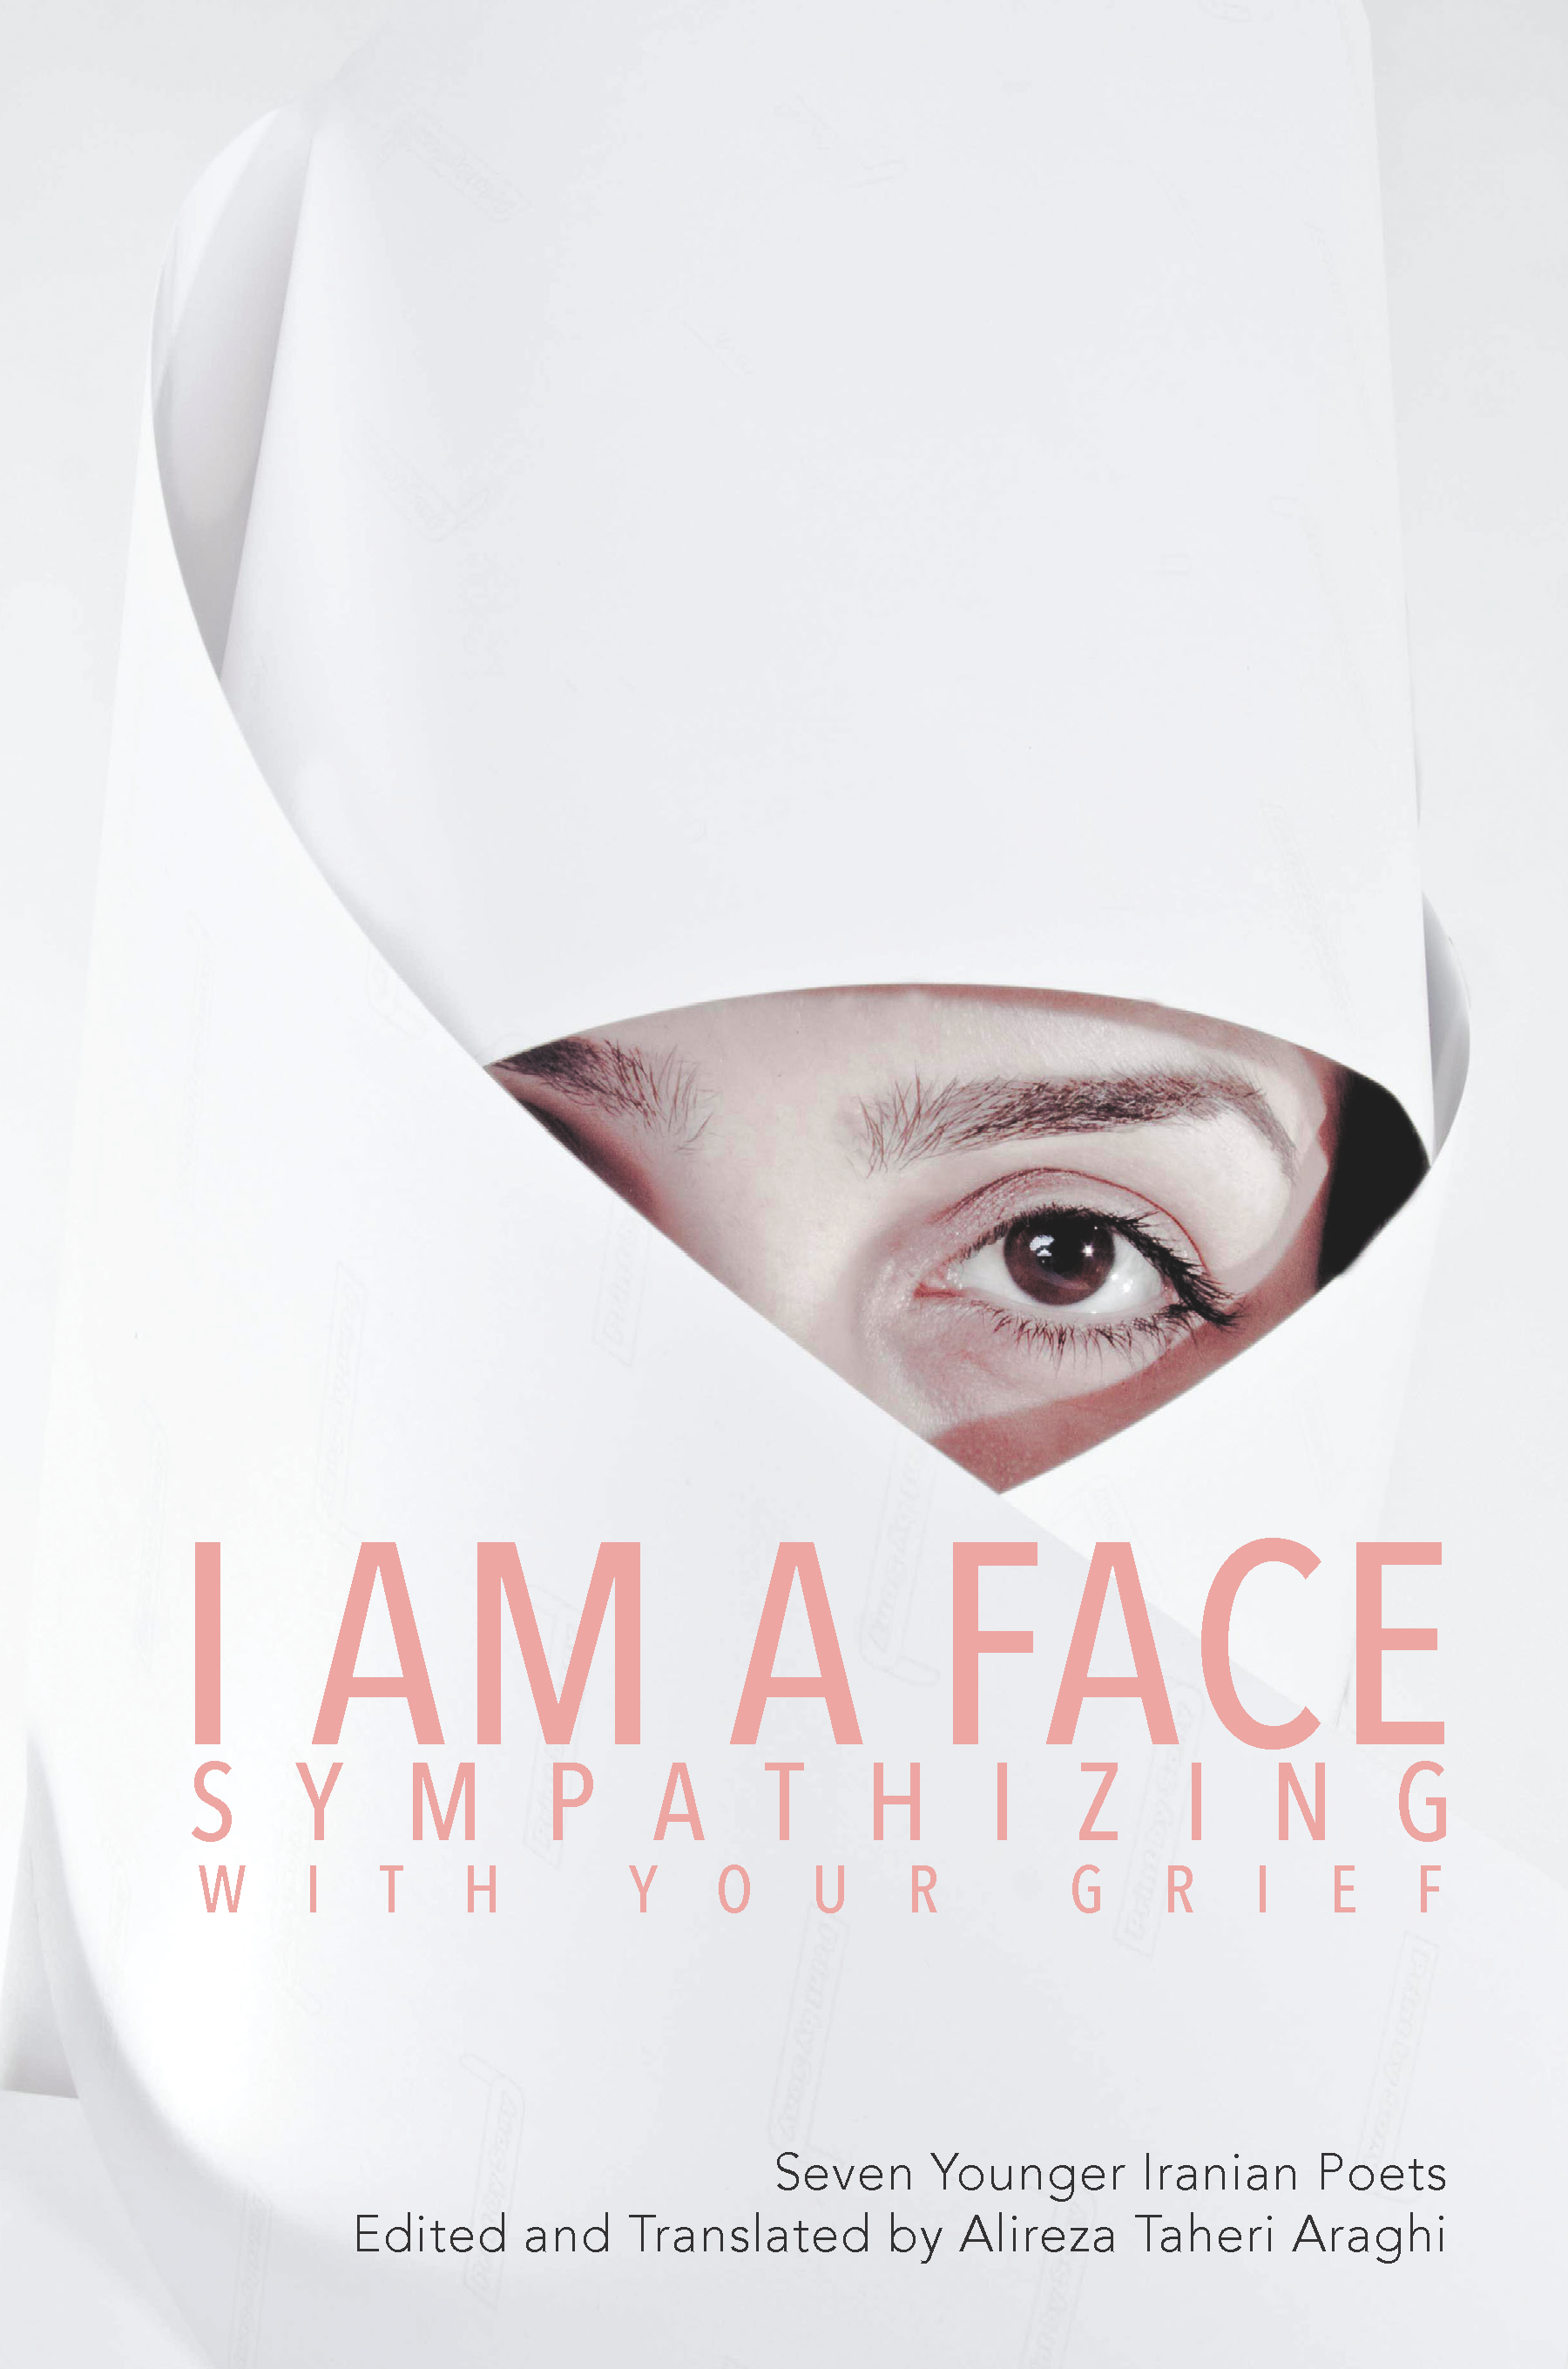 Alireza Taheri Araghi-I Am a Face Sympathizing with Your Grief